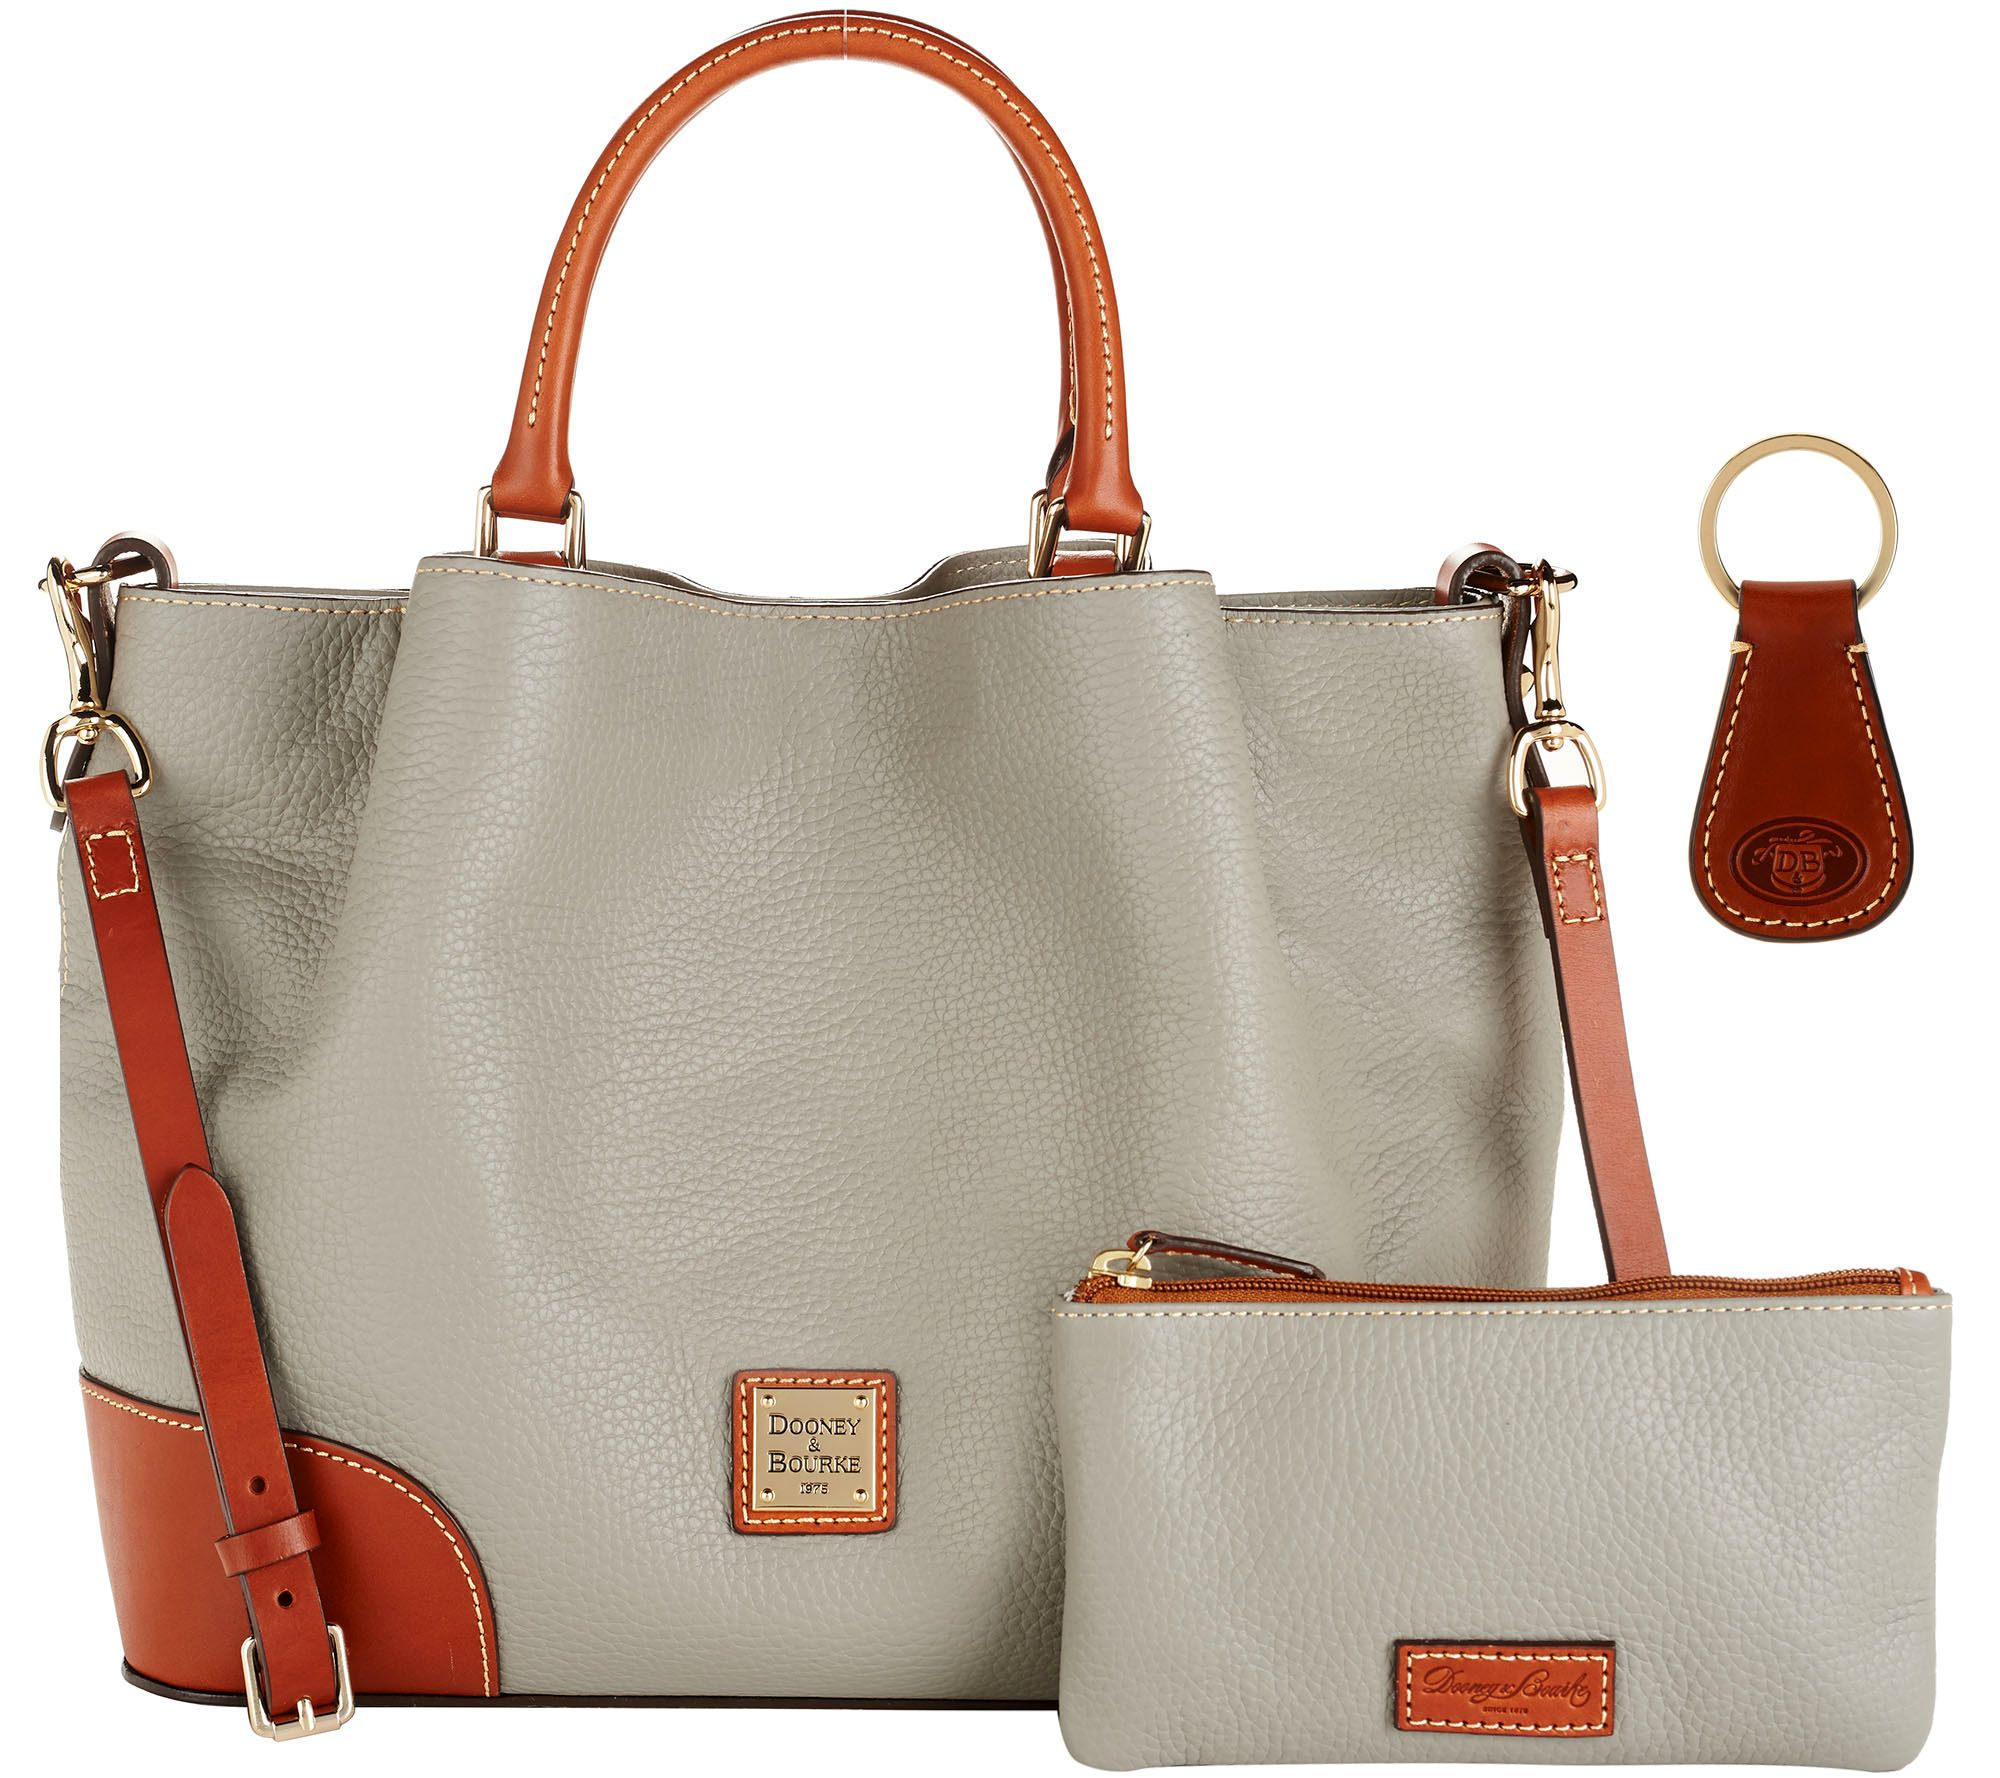 bab1d316938 Dooney   Bourke Pebble Leather Brenna Satchel with Accessories - Page 1 —  QVC.com